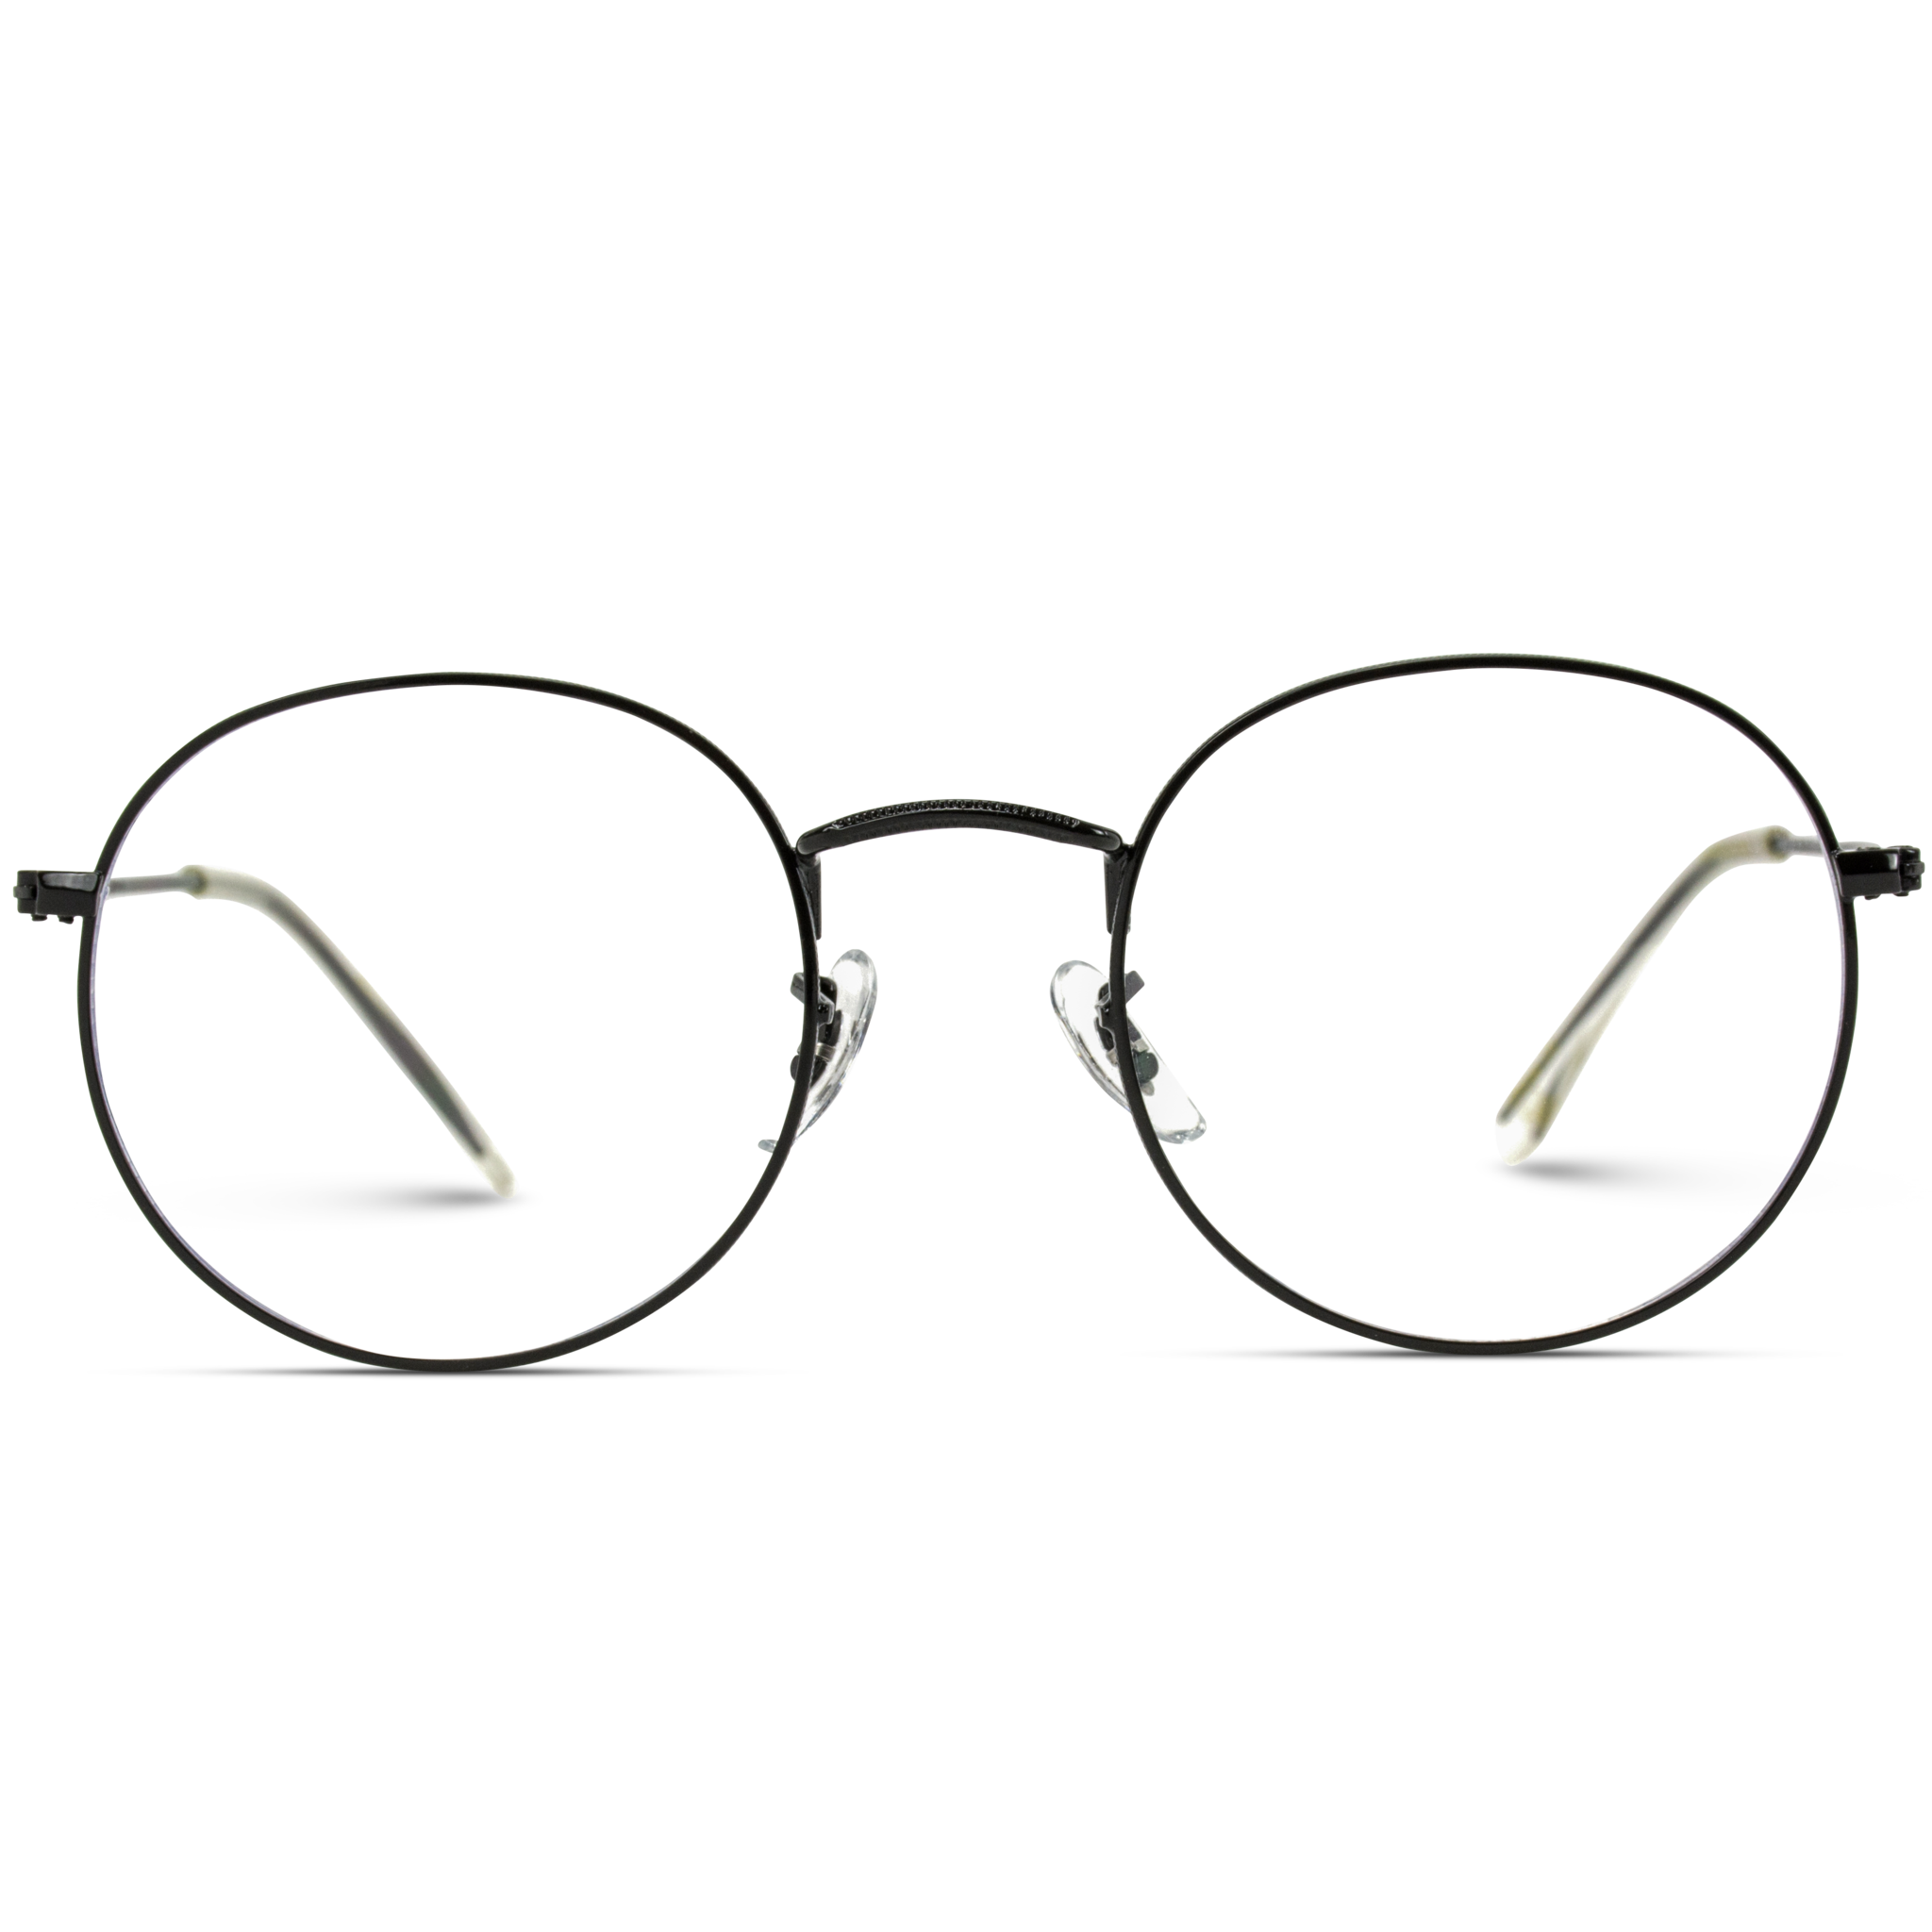 Round Clear Hipster Glasses These Circular Glasses Are Reminiscent Of Harry Potter The Blaine Glasses Classic Ro Clear Glasses Glasses Frames Trendy Glasses